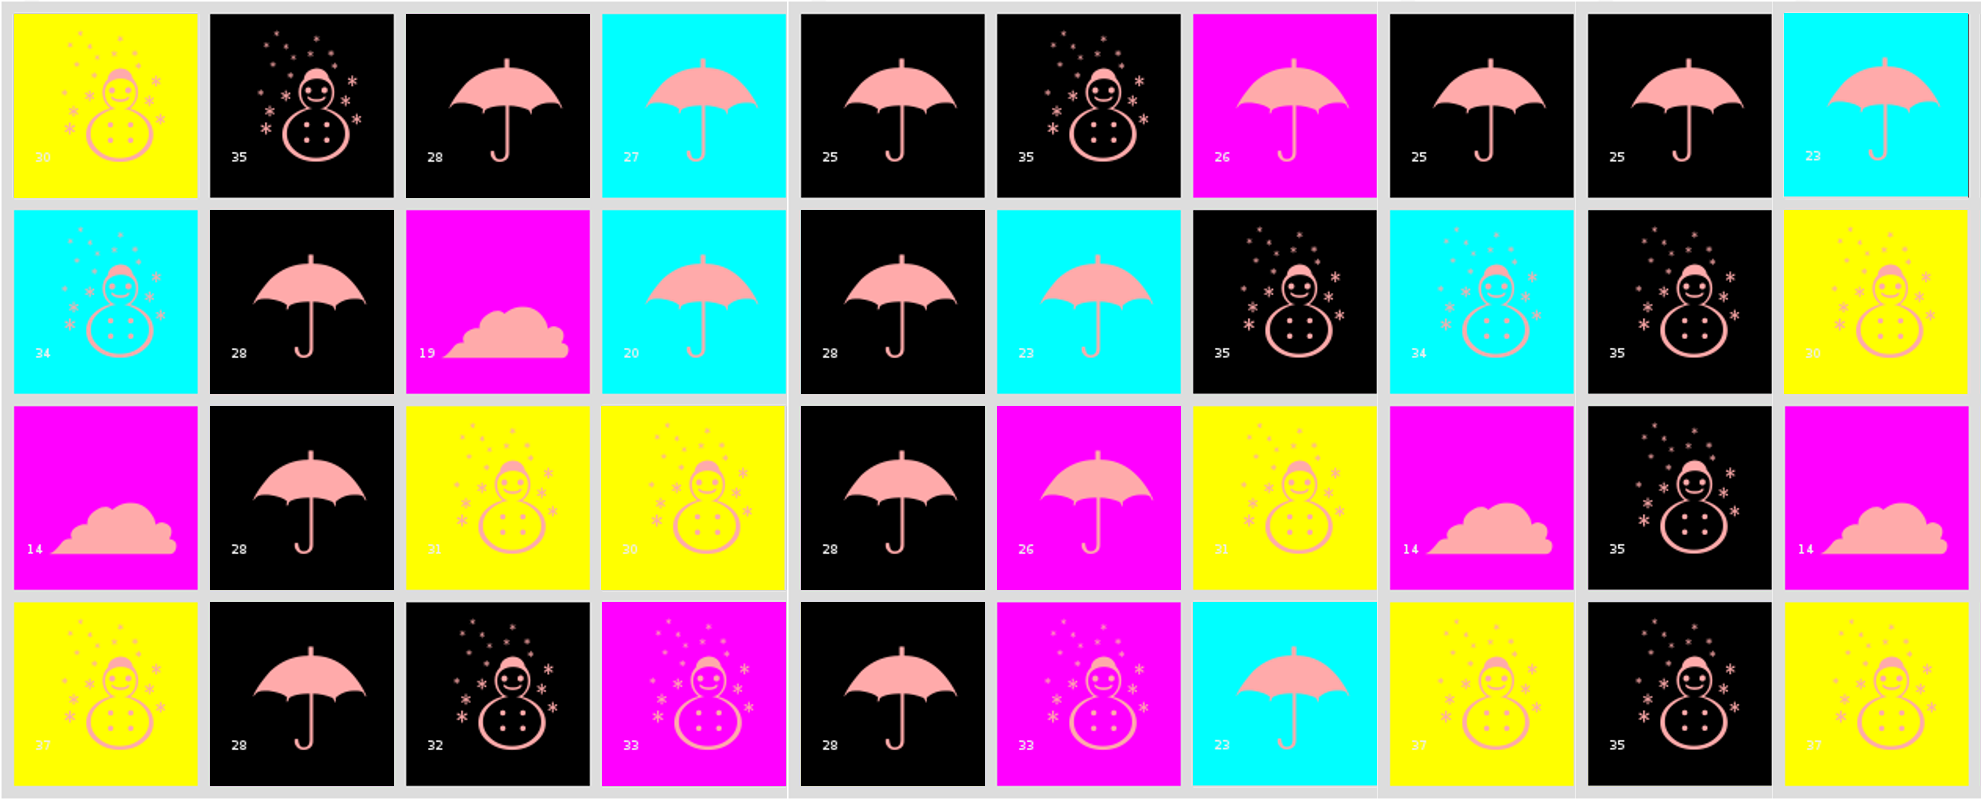 1fed69e52c93 CMYK3 - A clever tile game